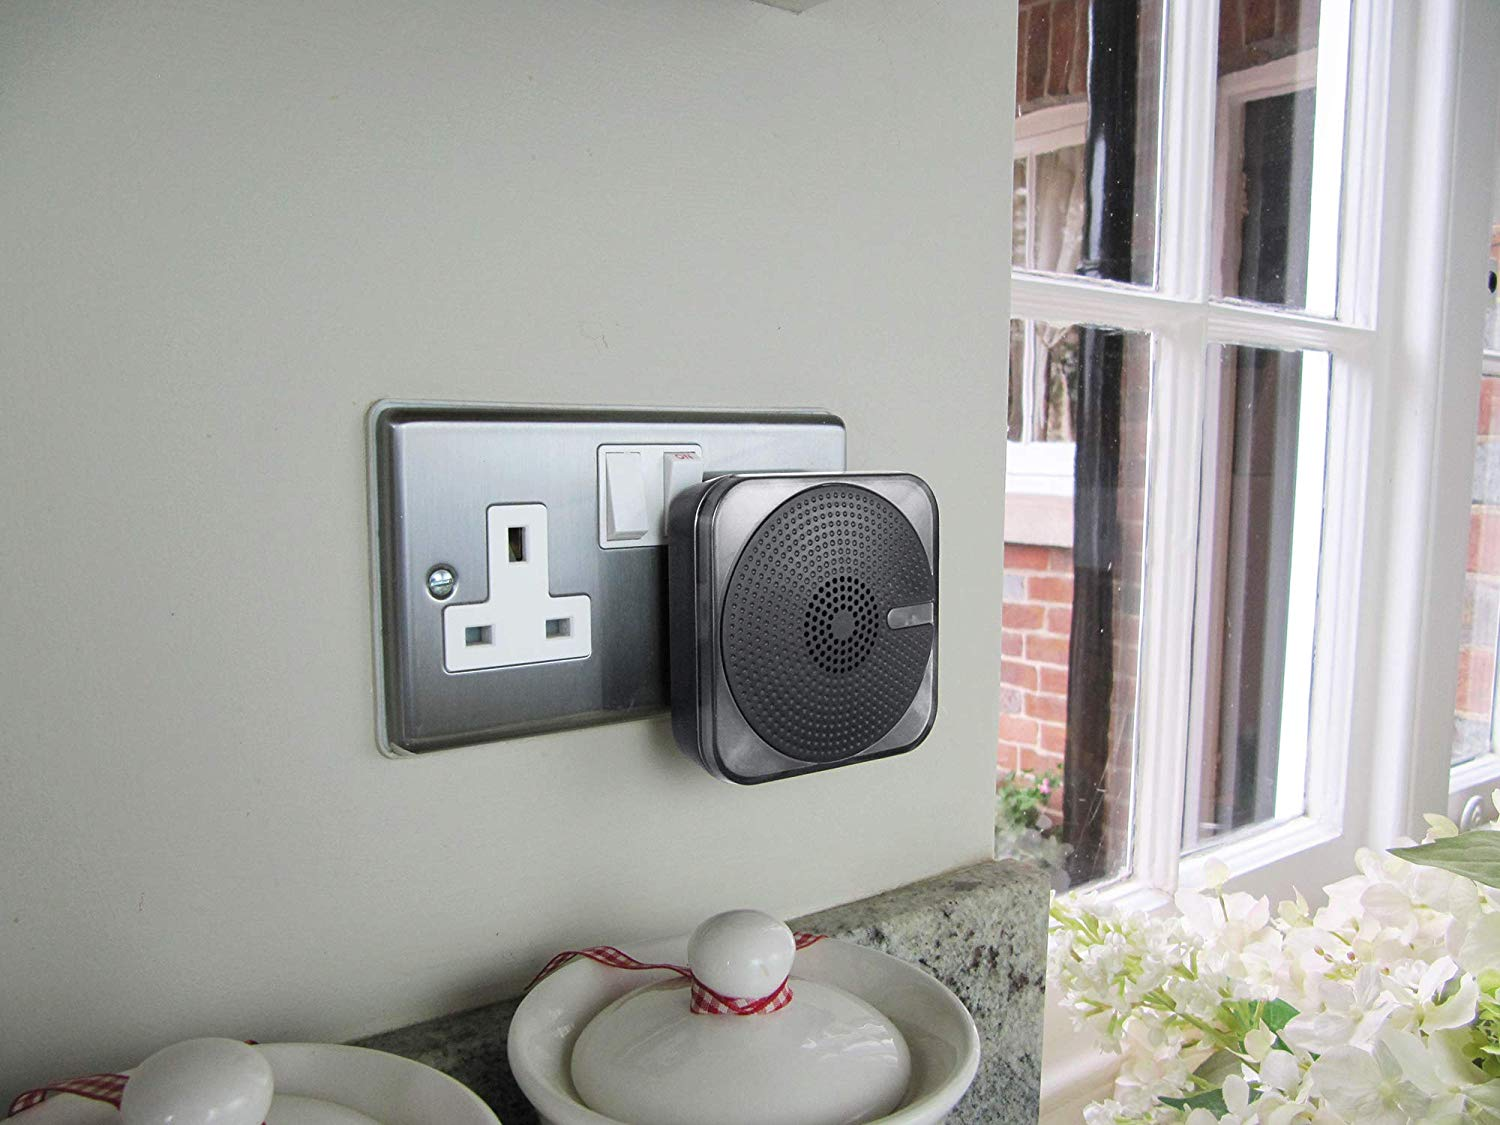 Plug-in Door Chime with Kinetic Bell Push